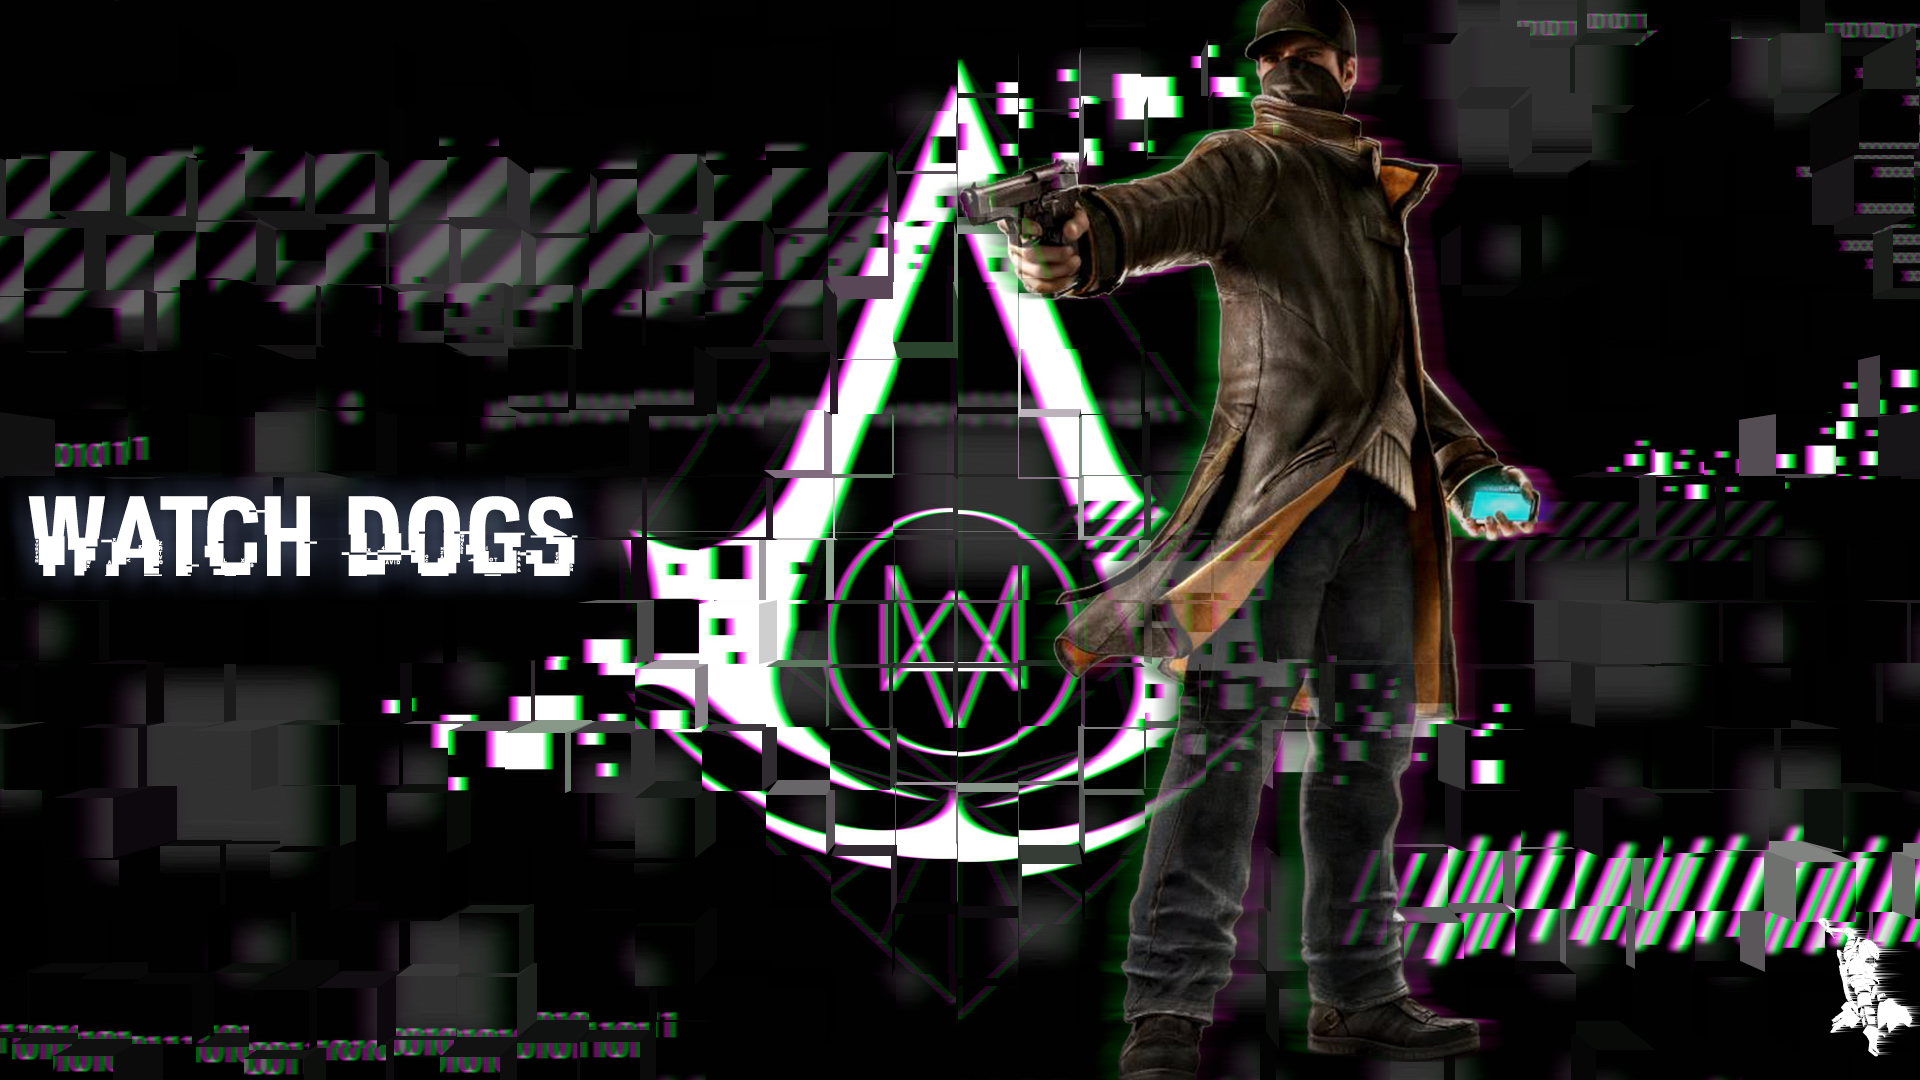 Wallpaper Fhd Aiden Pearce Watch Dogs By Jhardy2010 On